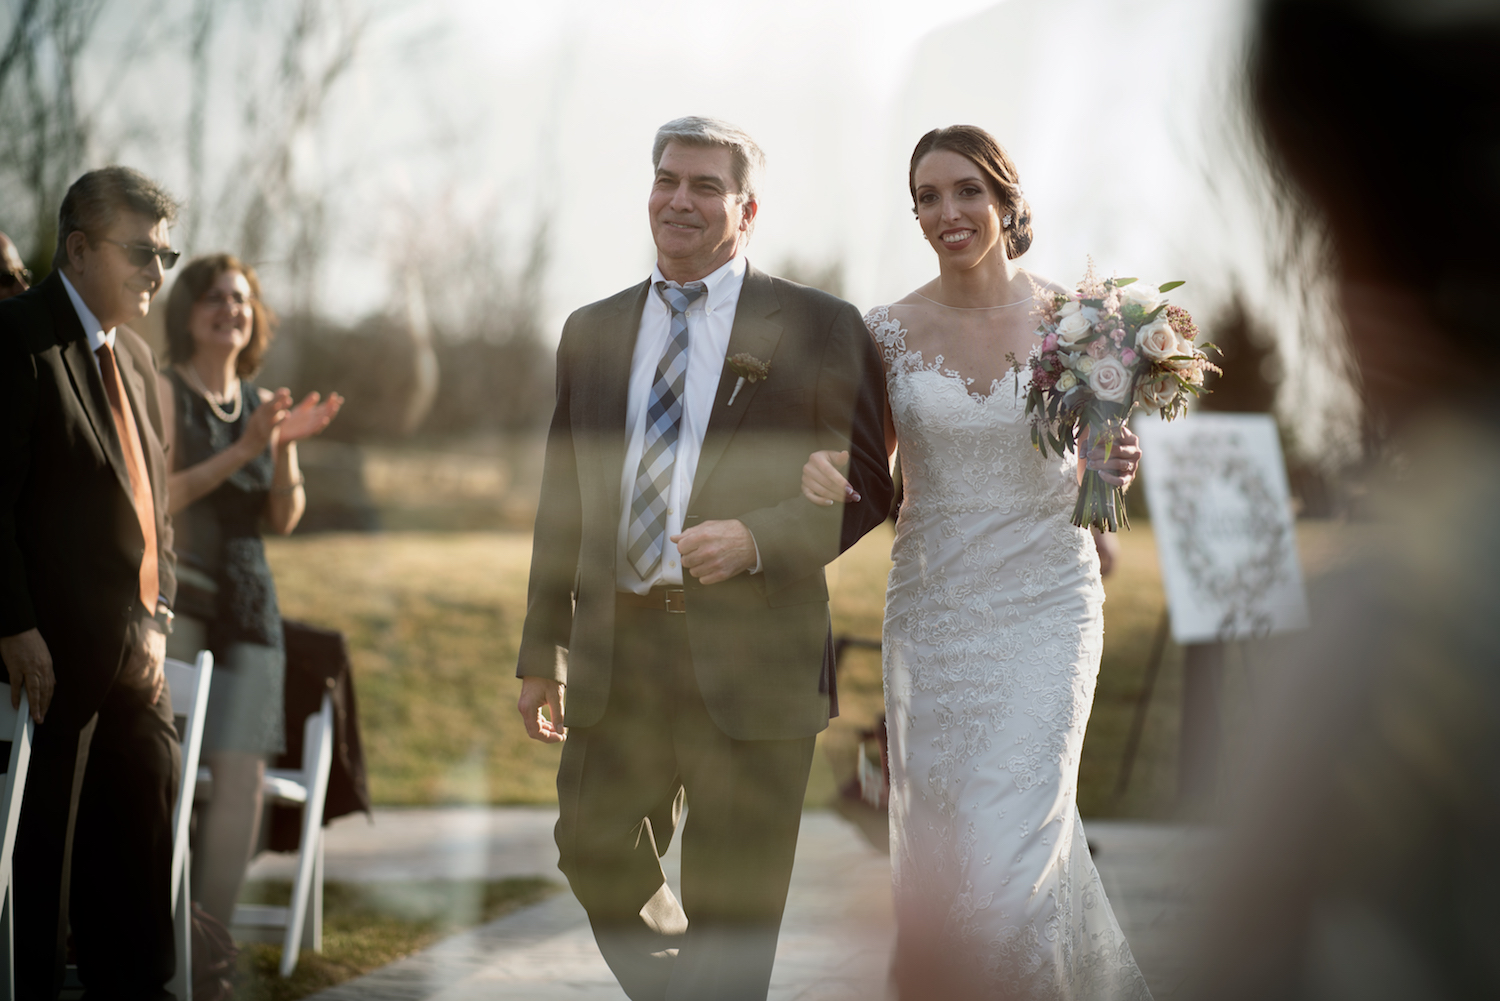 kelly-dad-walking-down-aisle-outdoor-ceremony-nj-wedding-photographers